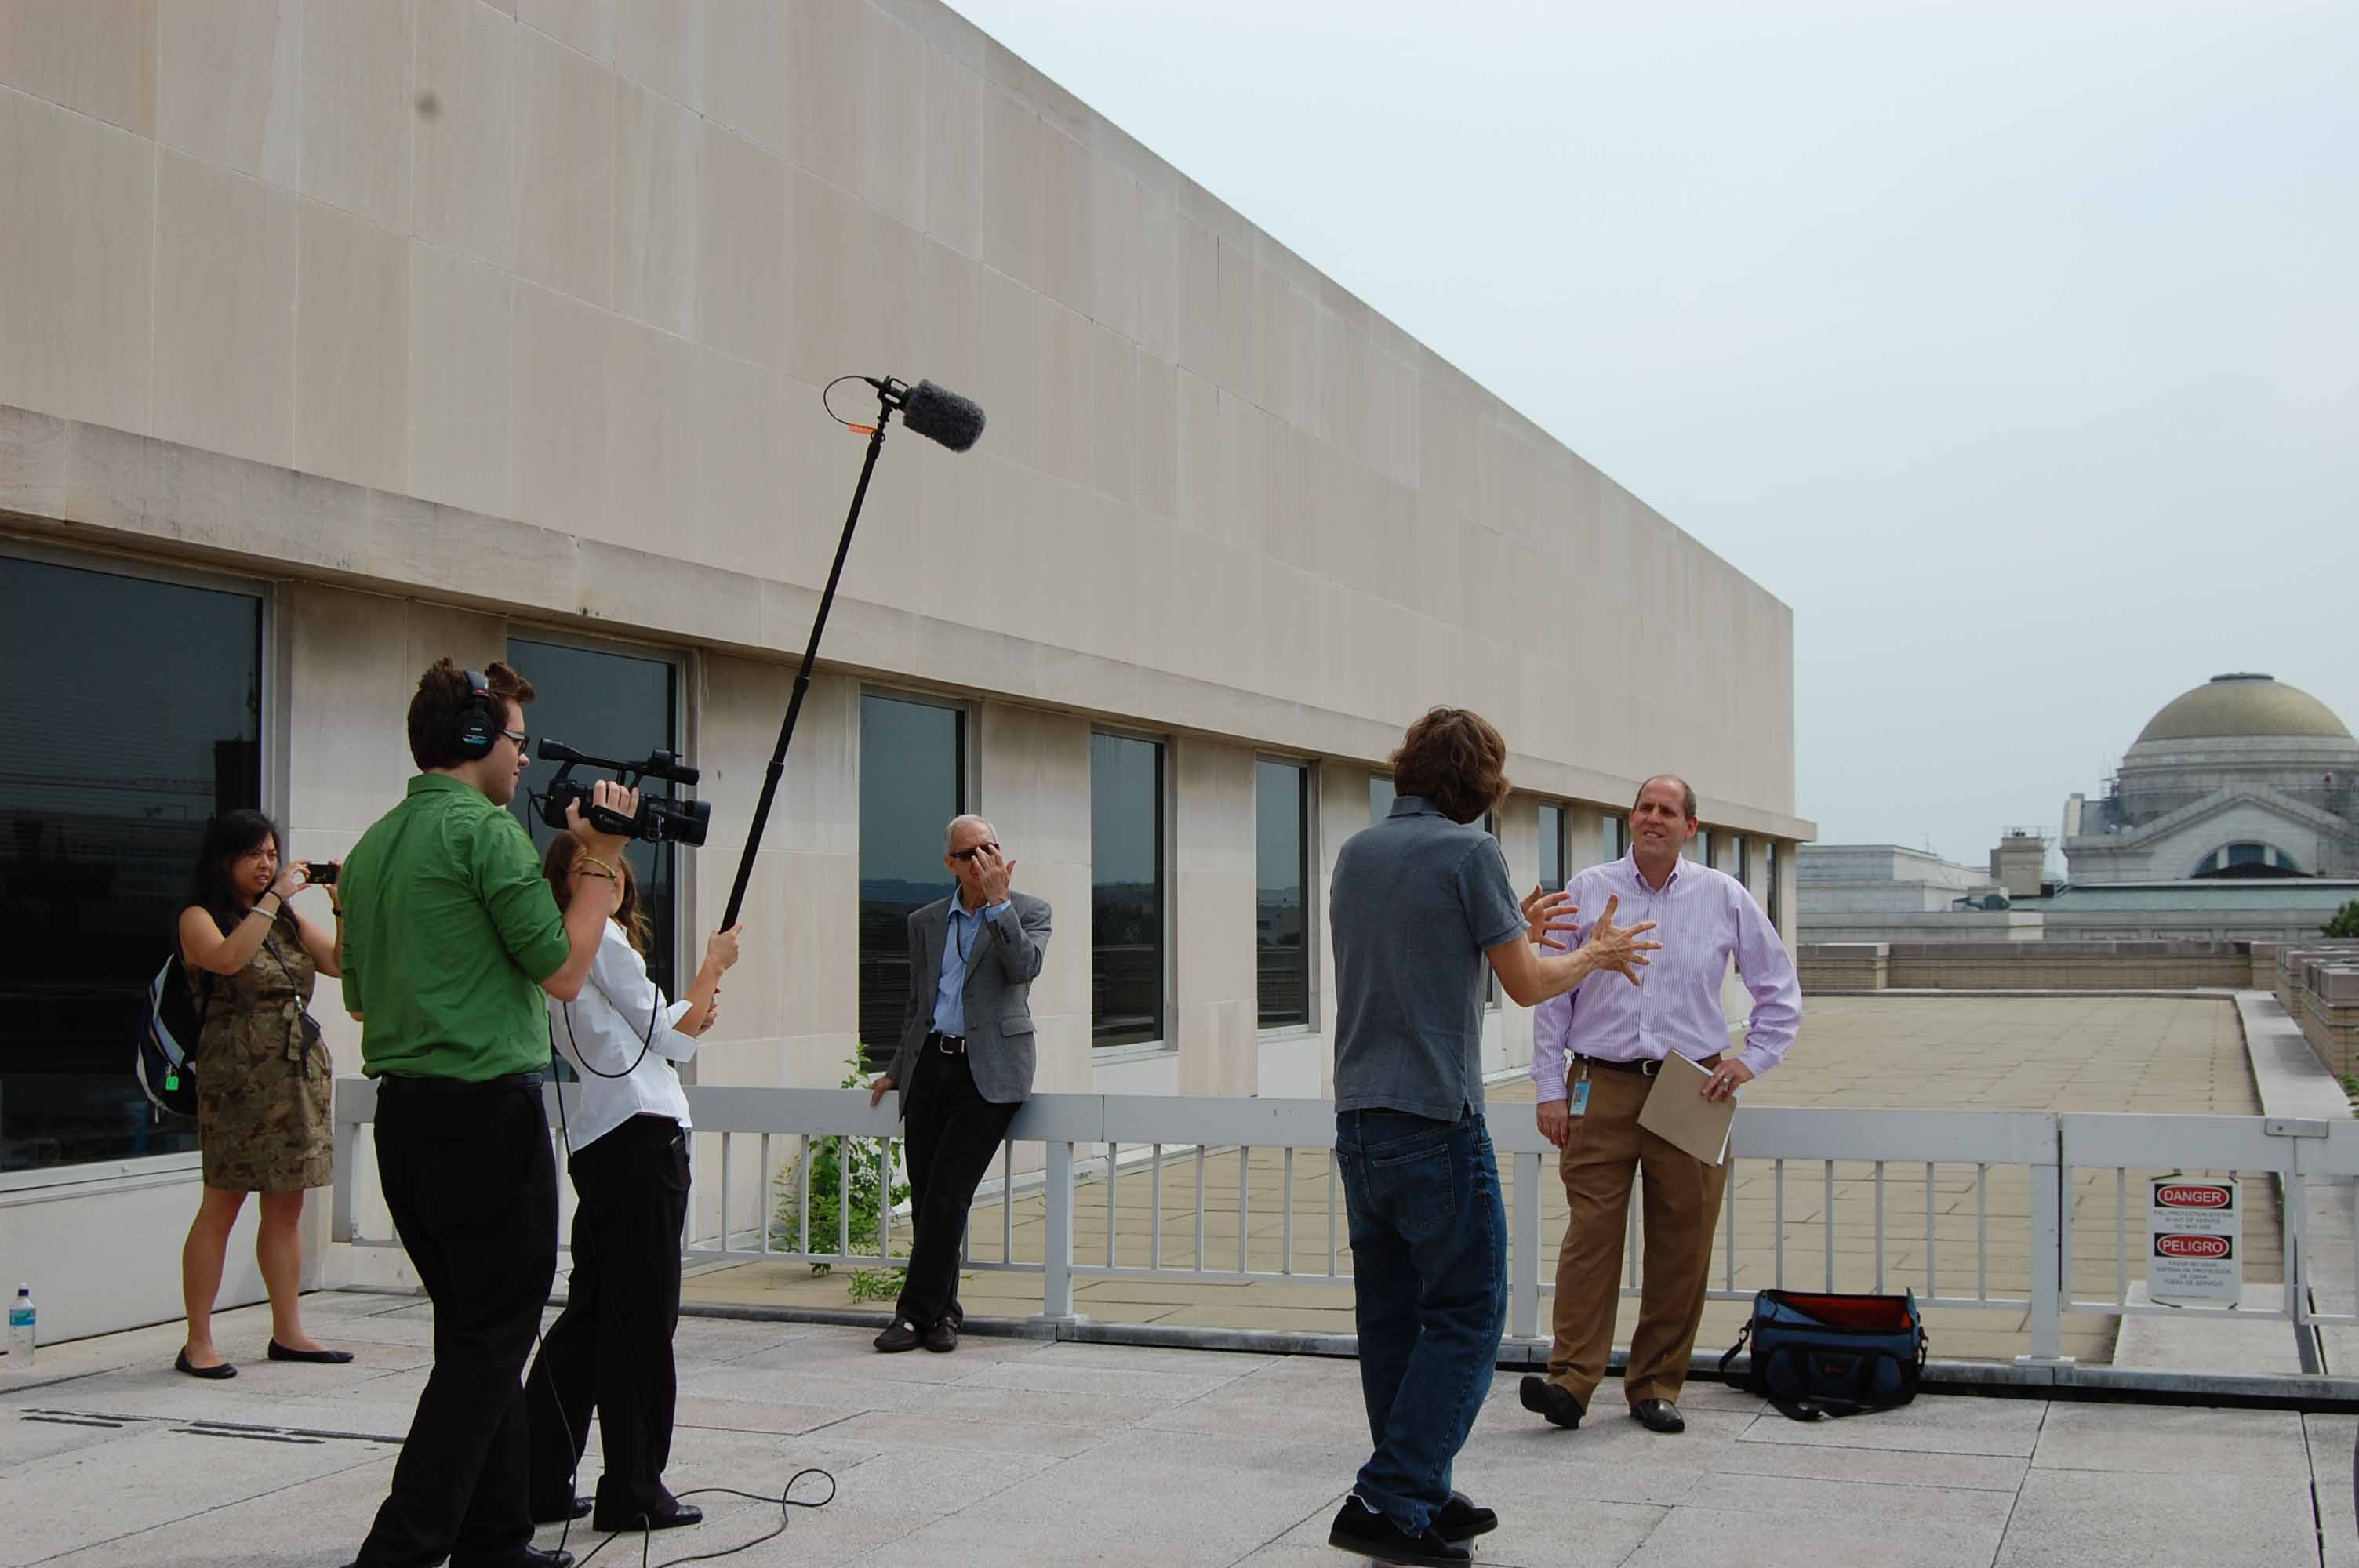 Skate legend Rodney Mullen was kind enough to let us film him doing tricks on the roof terrace of the Museum.